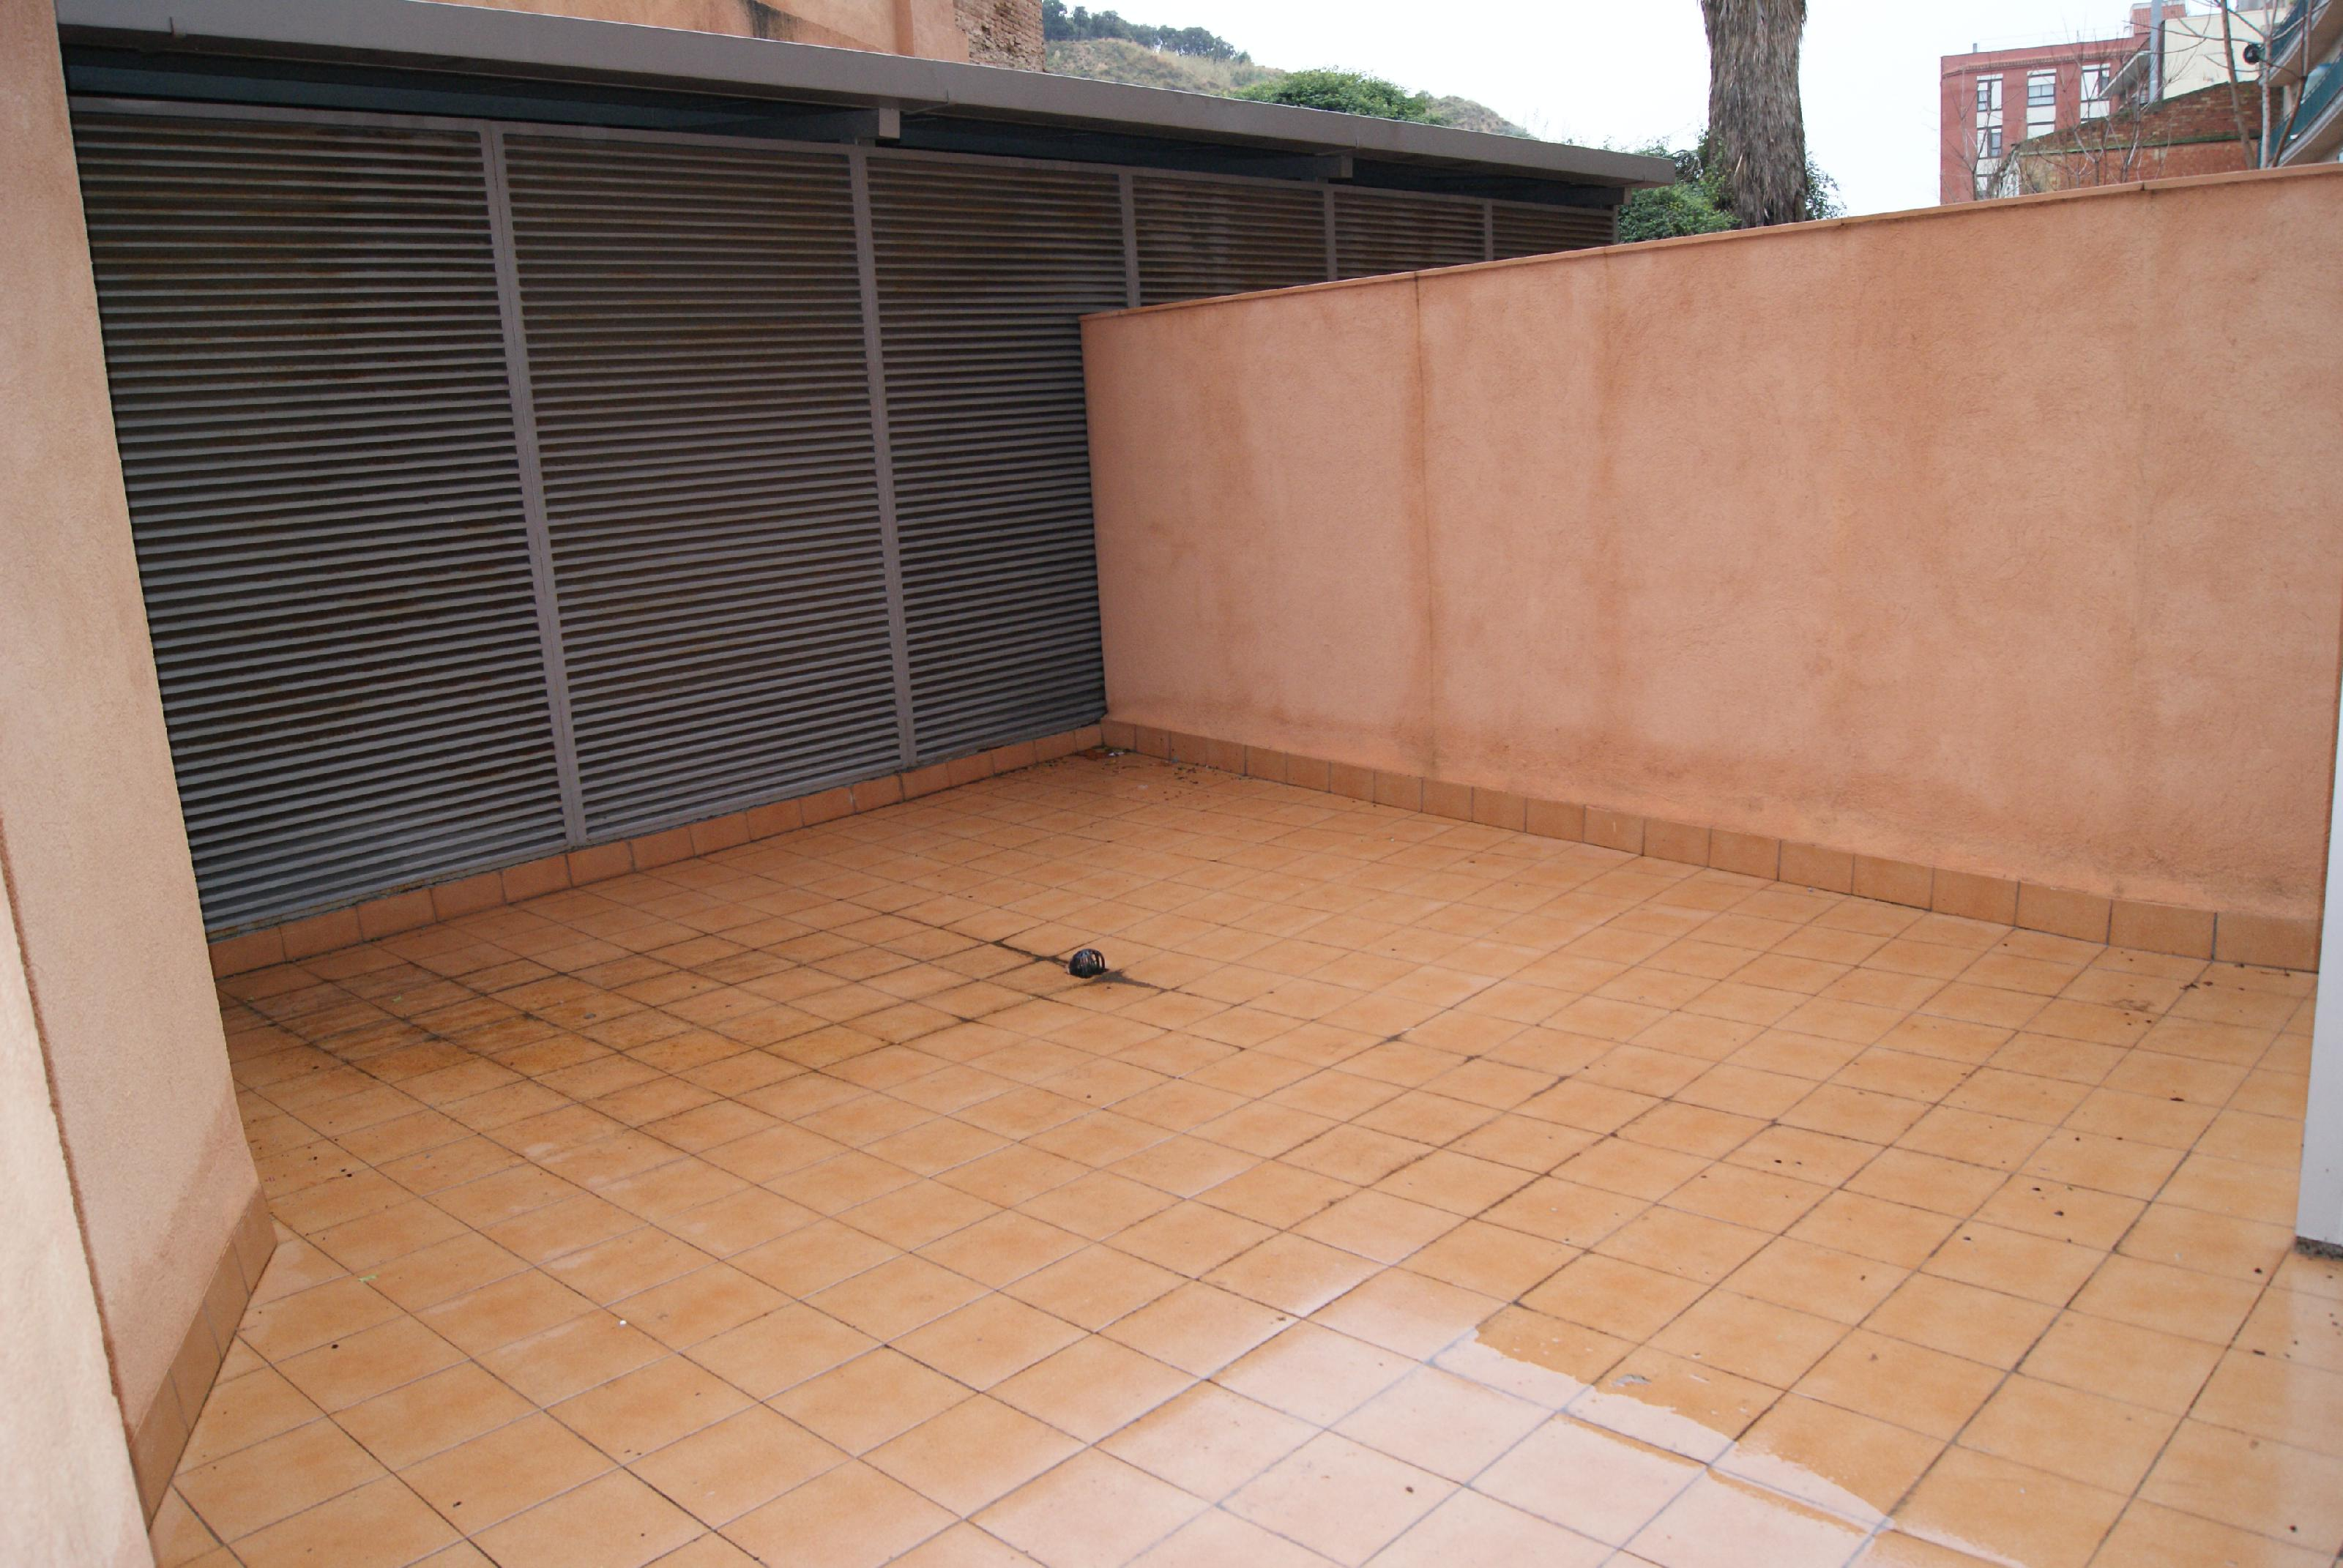 235220 Duplex for sale in Sants-Montjuïc, La Marina de Port 2